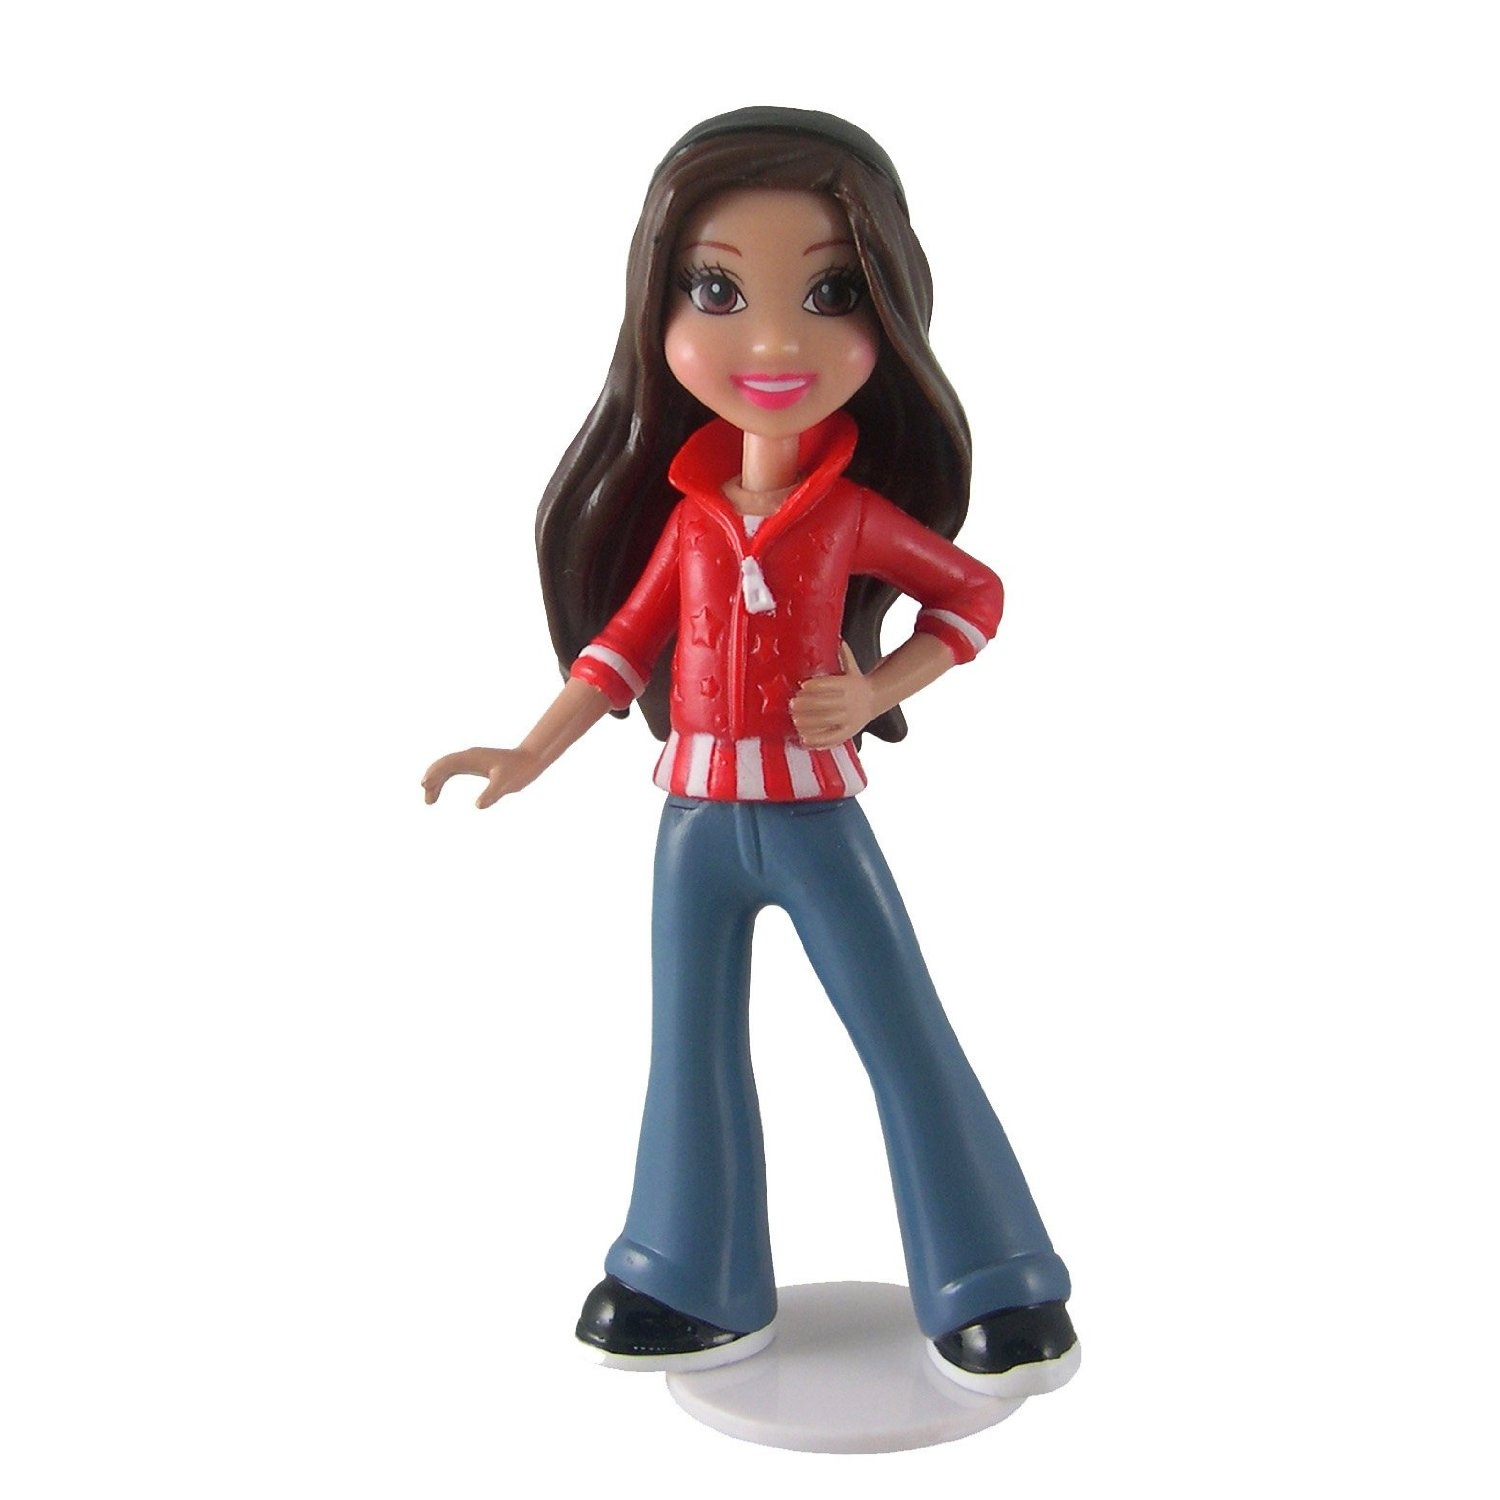 ICarly Doll Toys: Buy Online from Fishpond.com